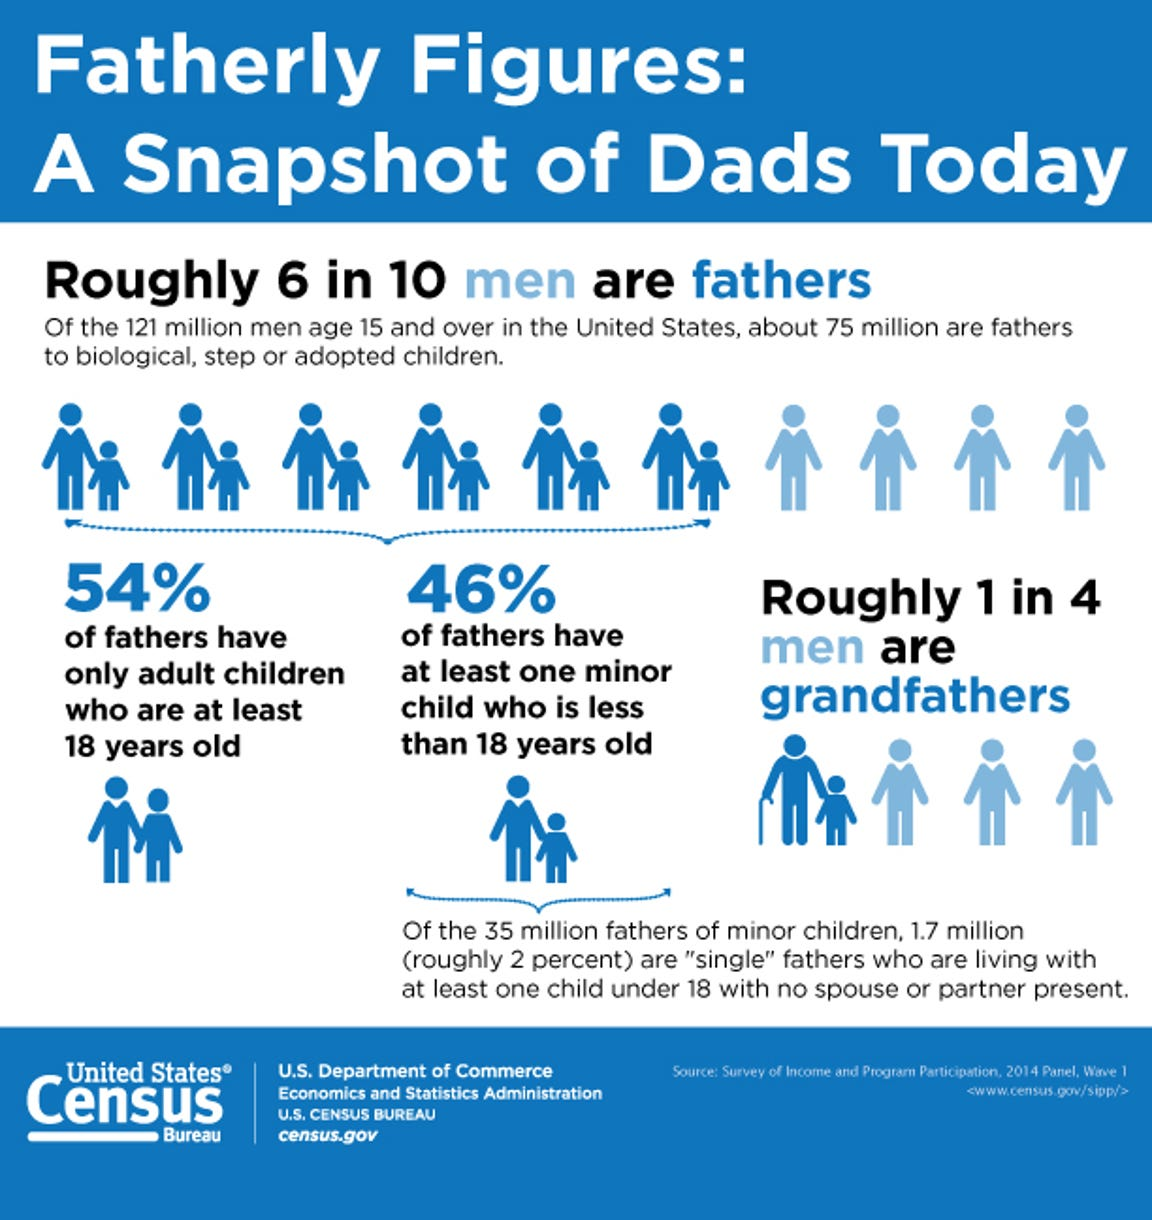 The U.S. Census Bureau published statistics that say 60 percent of the 121 million men in the United States over age 15 are fathers.